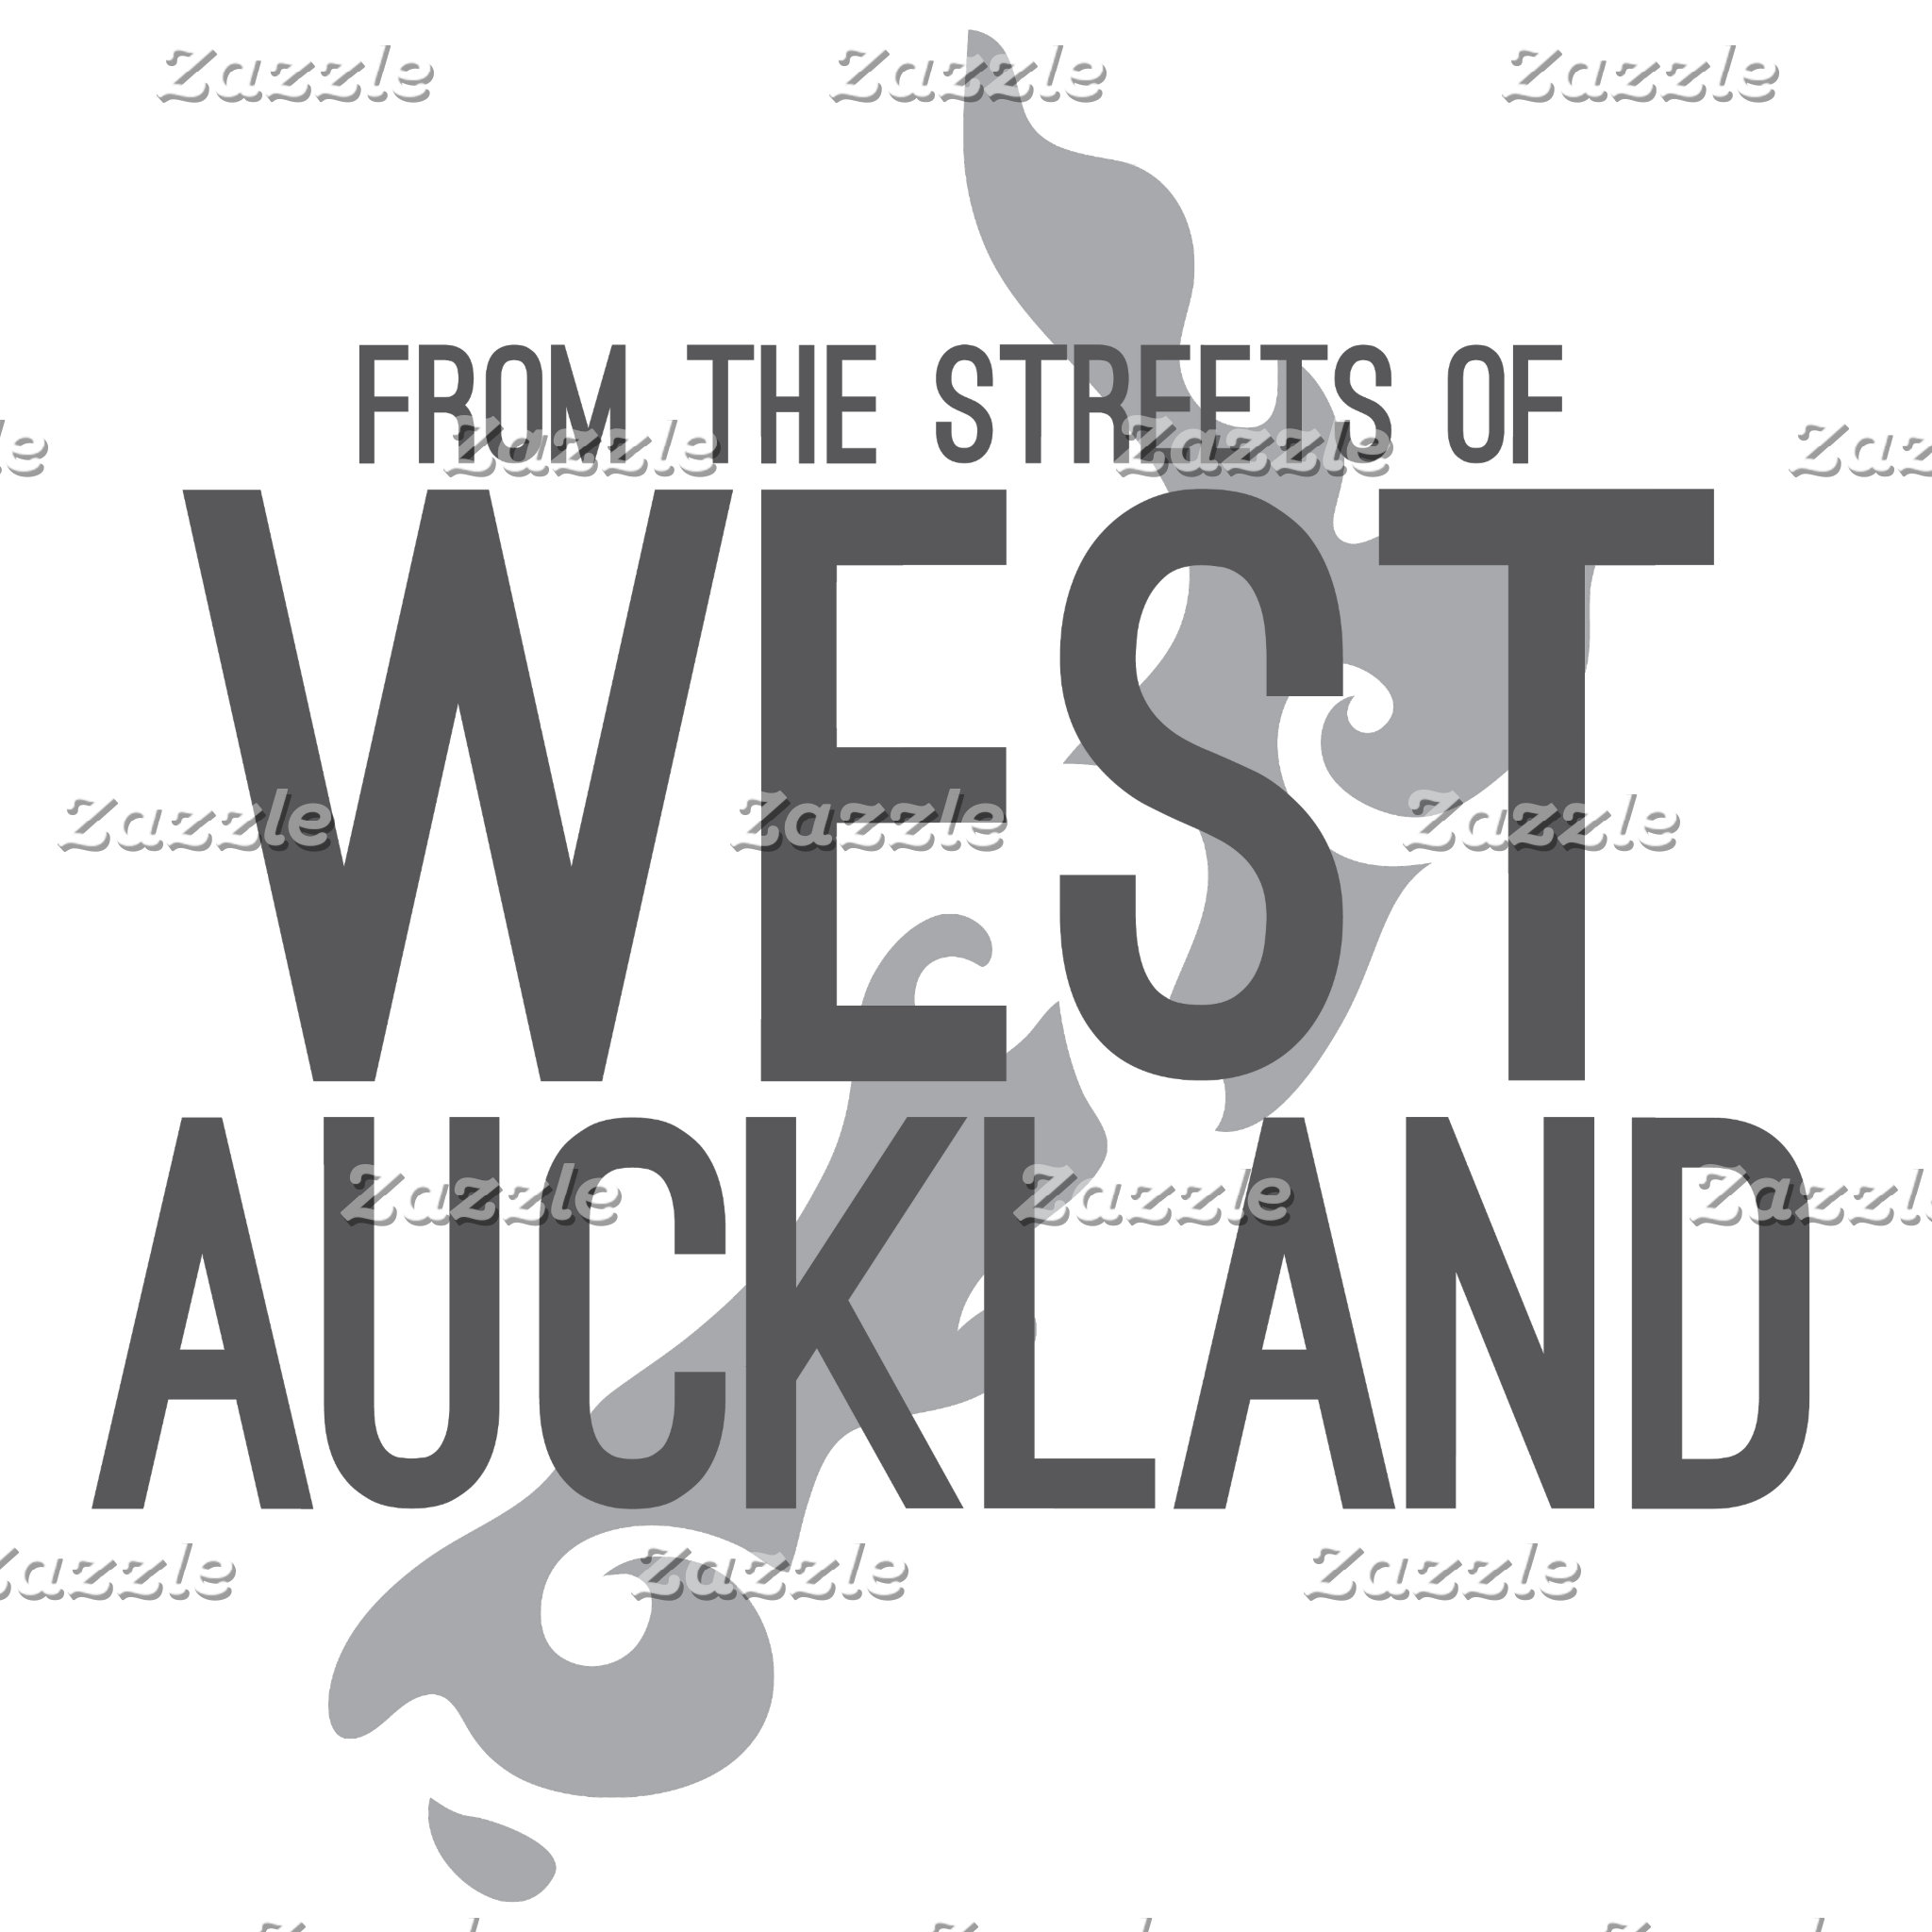 From the Streets of West Auckland